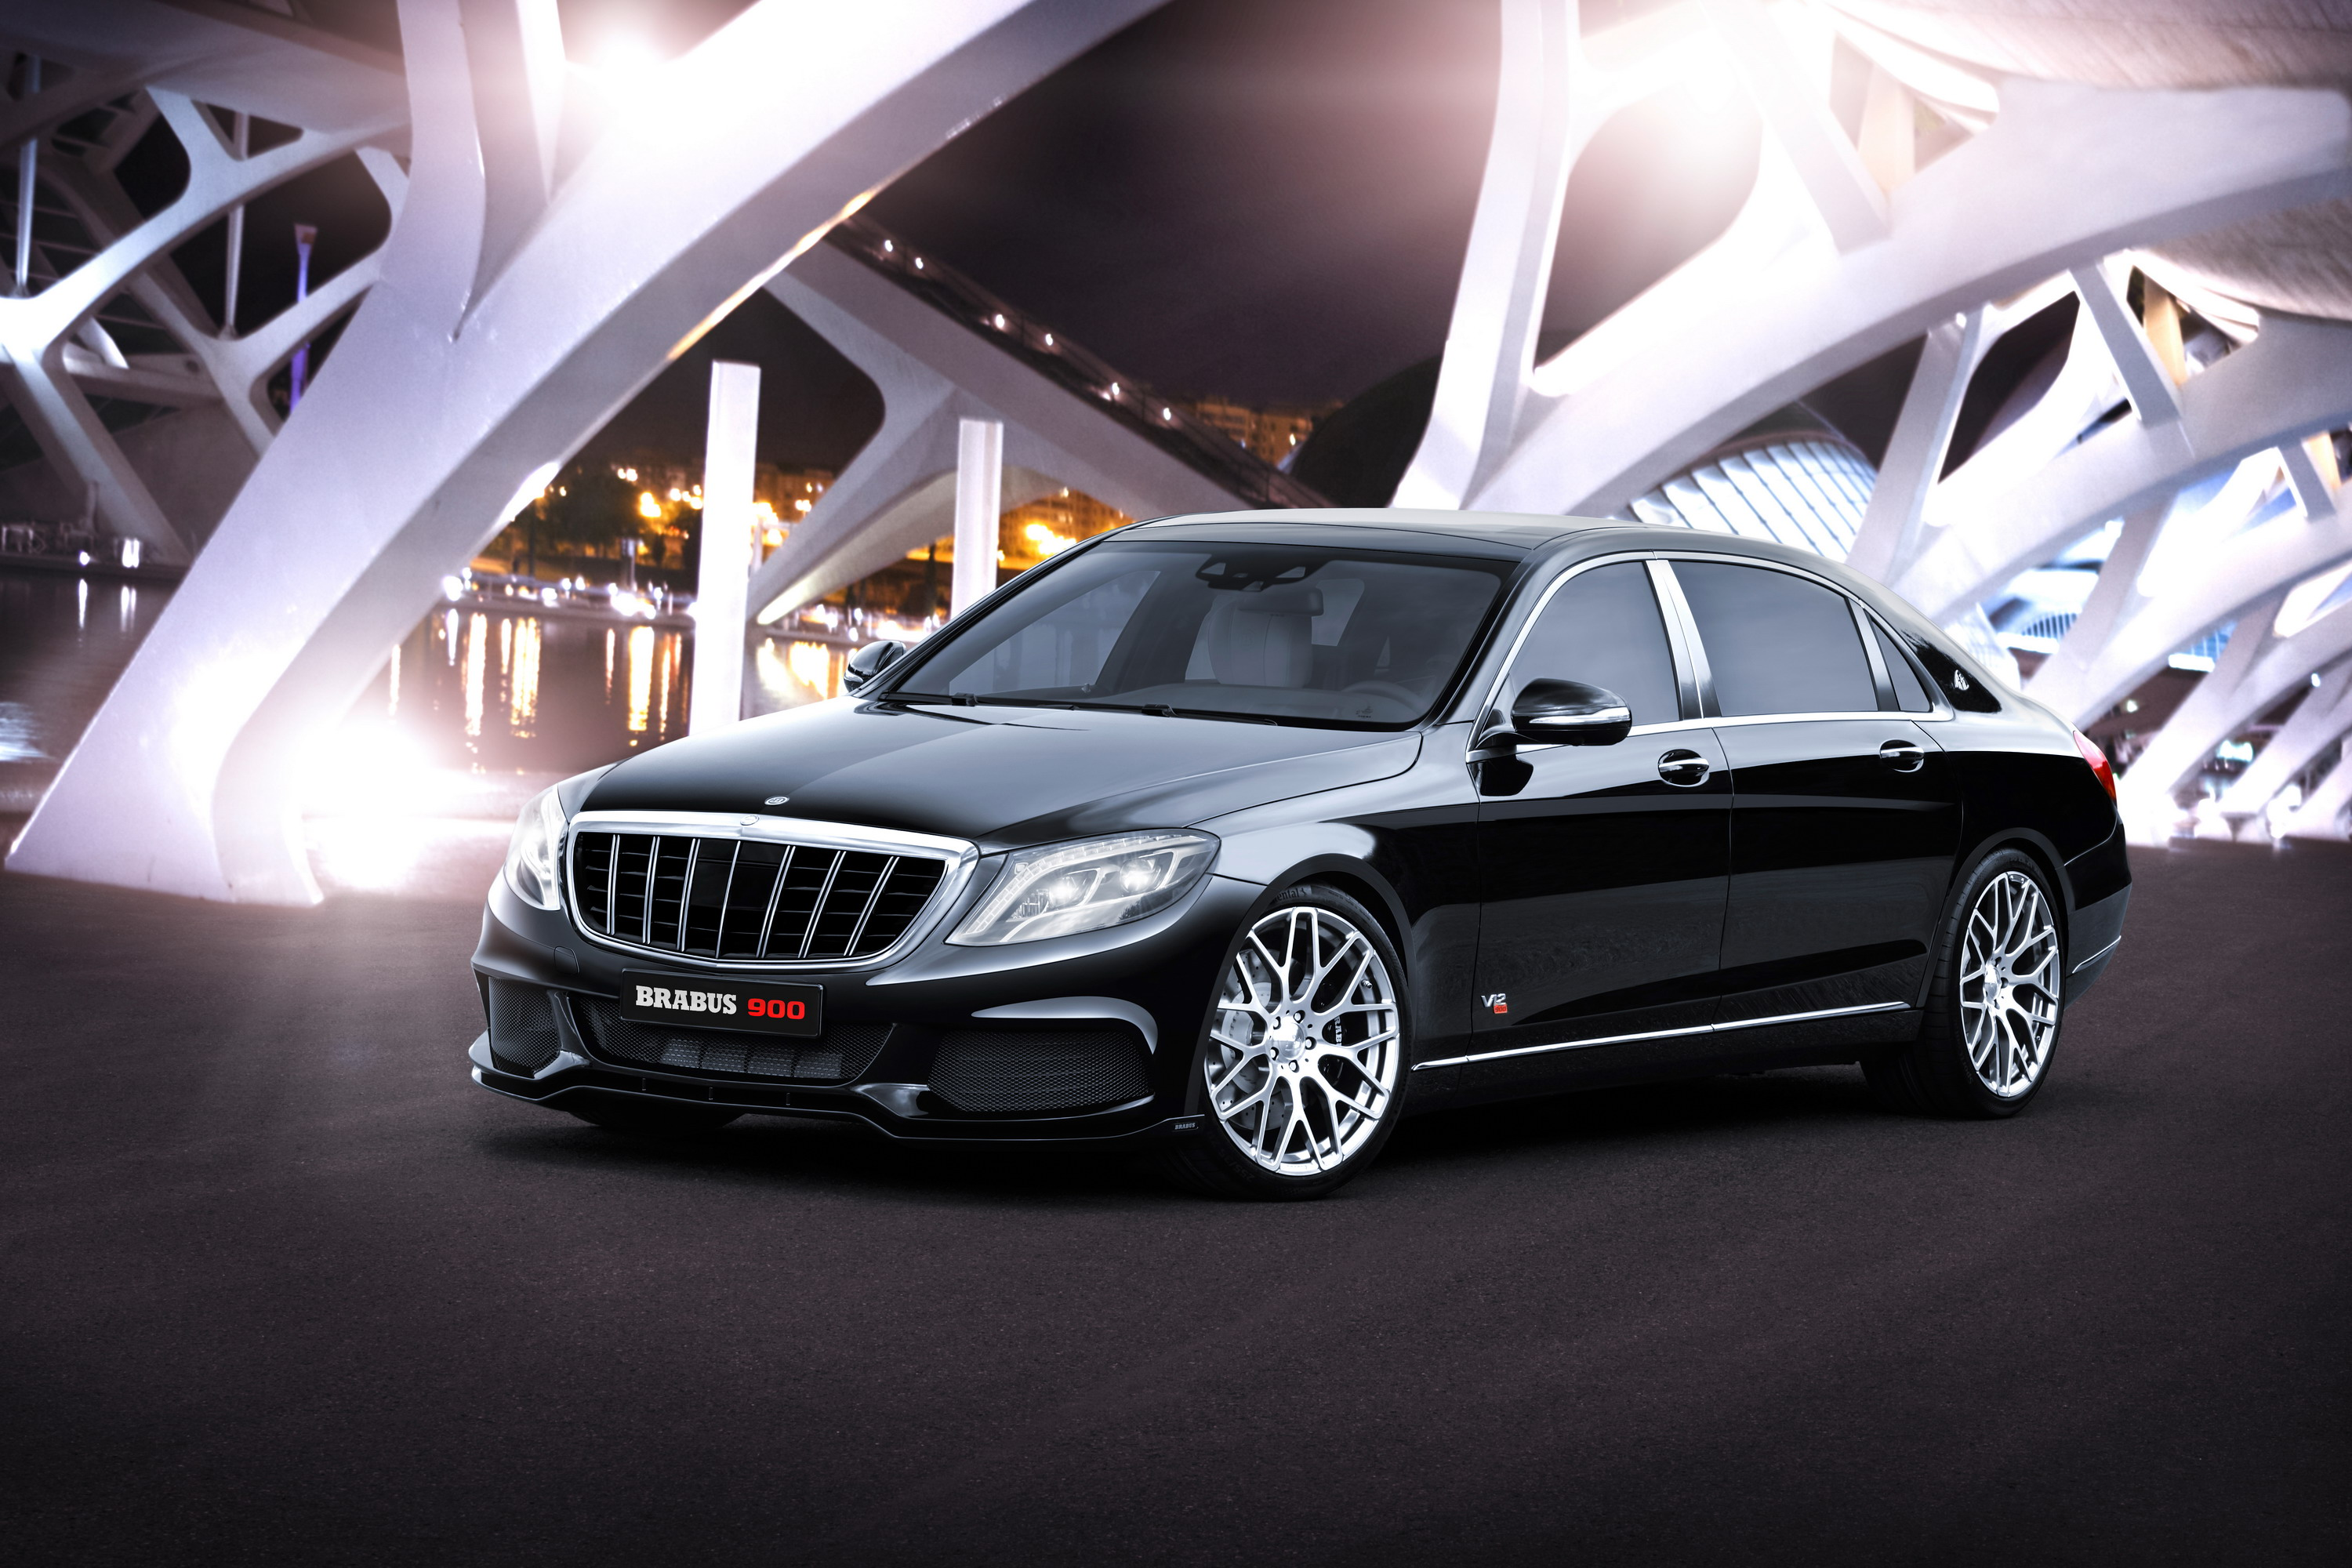 2016 Mercedes-Maybach 900 By Brabus | Top Speed